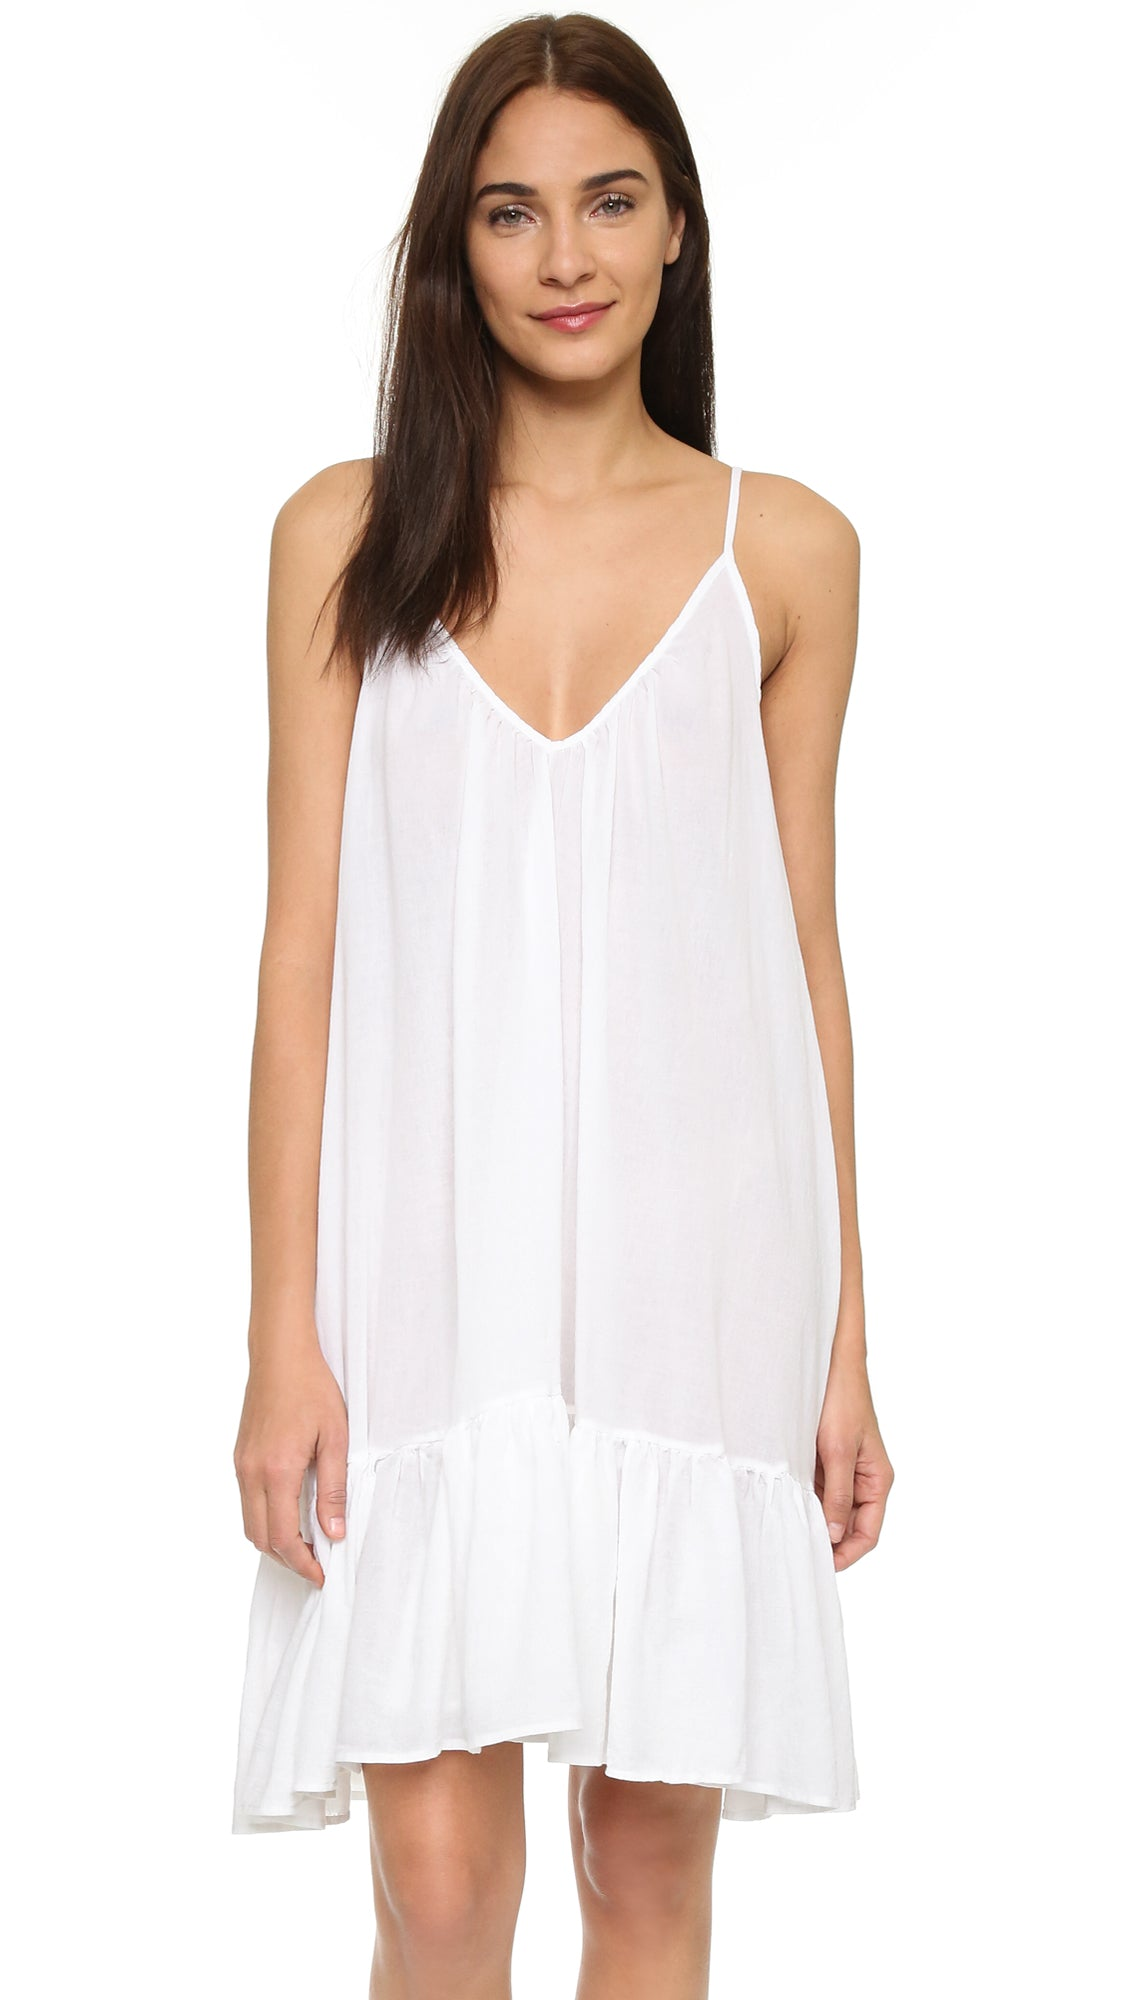 9Seed St Tropez Ruffle Cover Up Mini Dress White Sleeveless | ShopAA